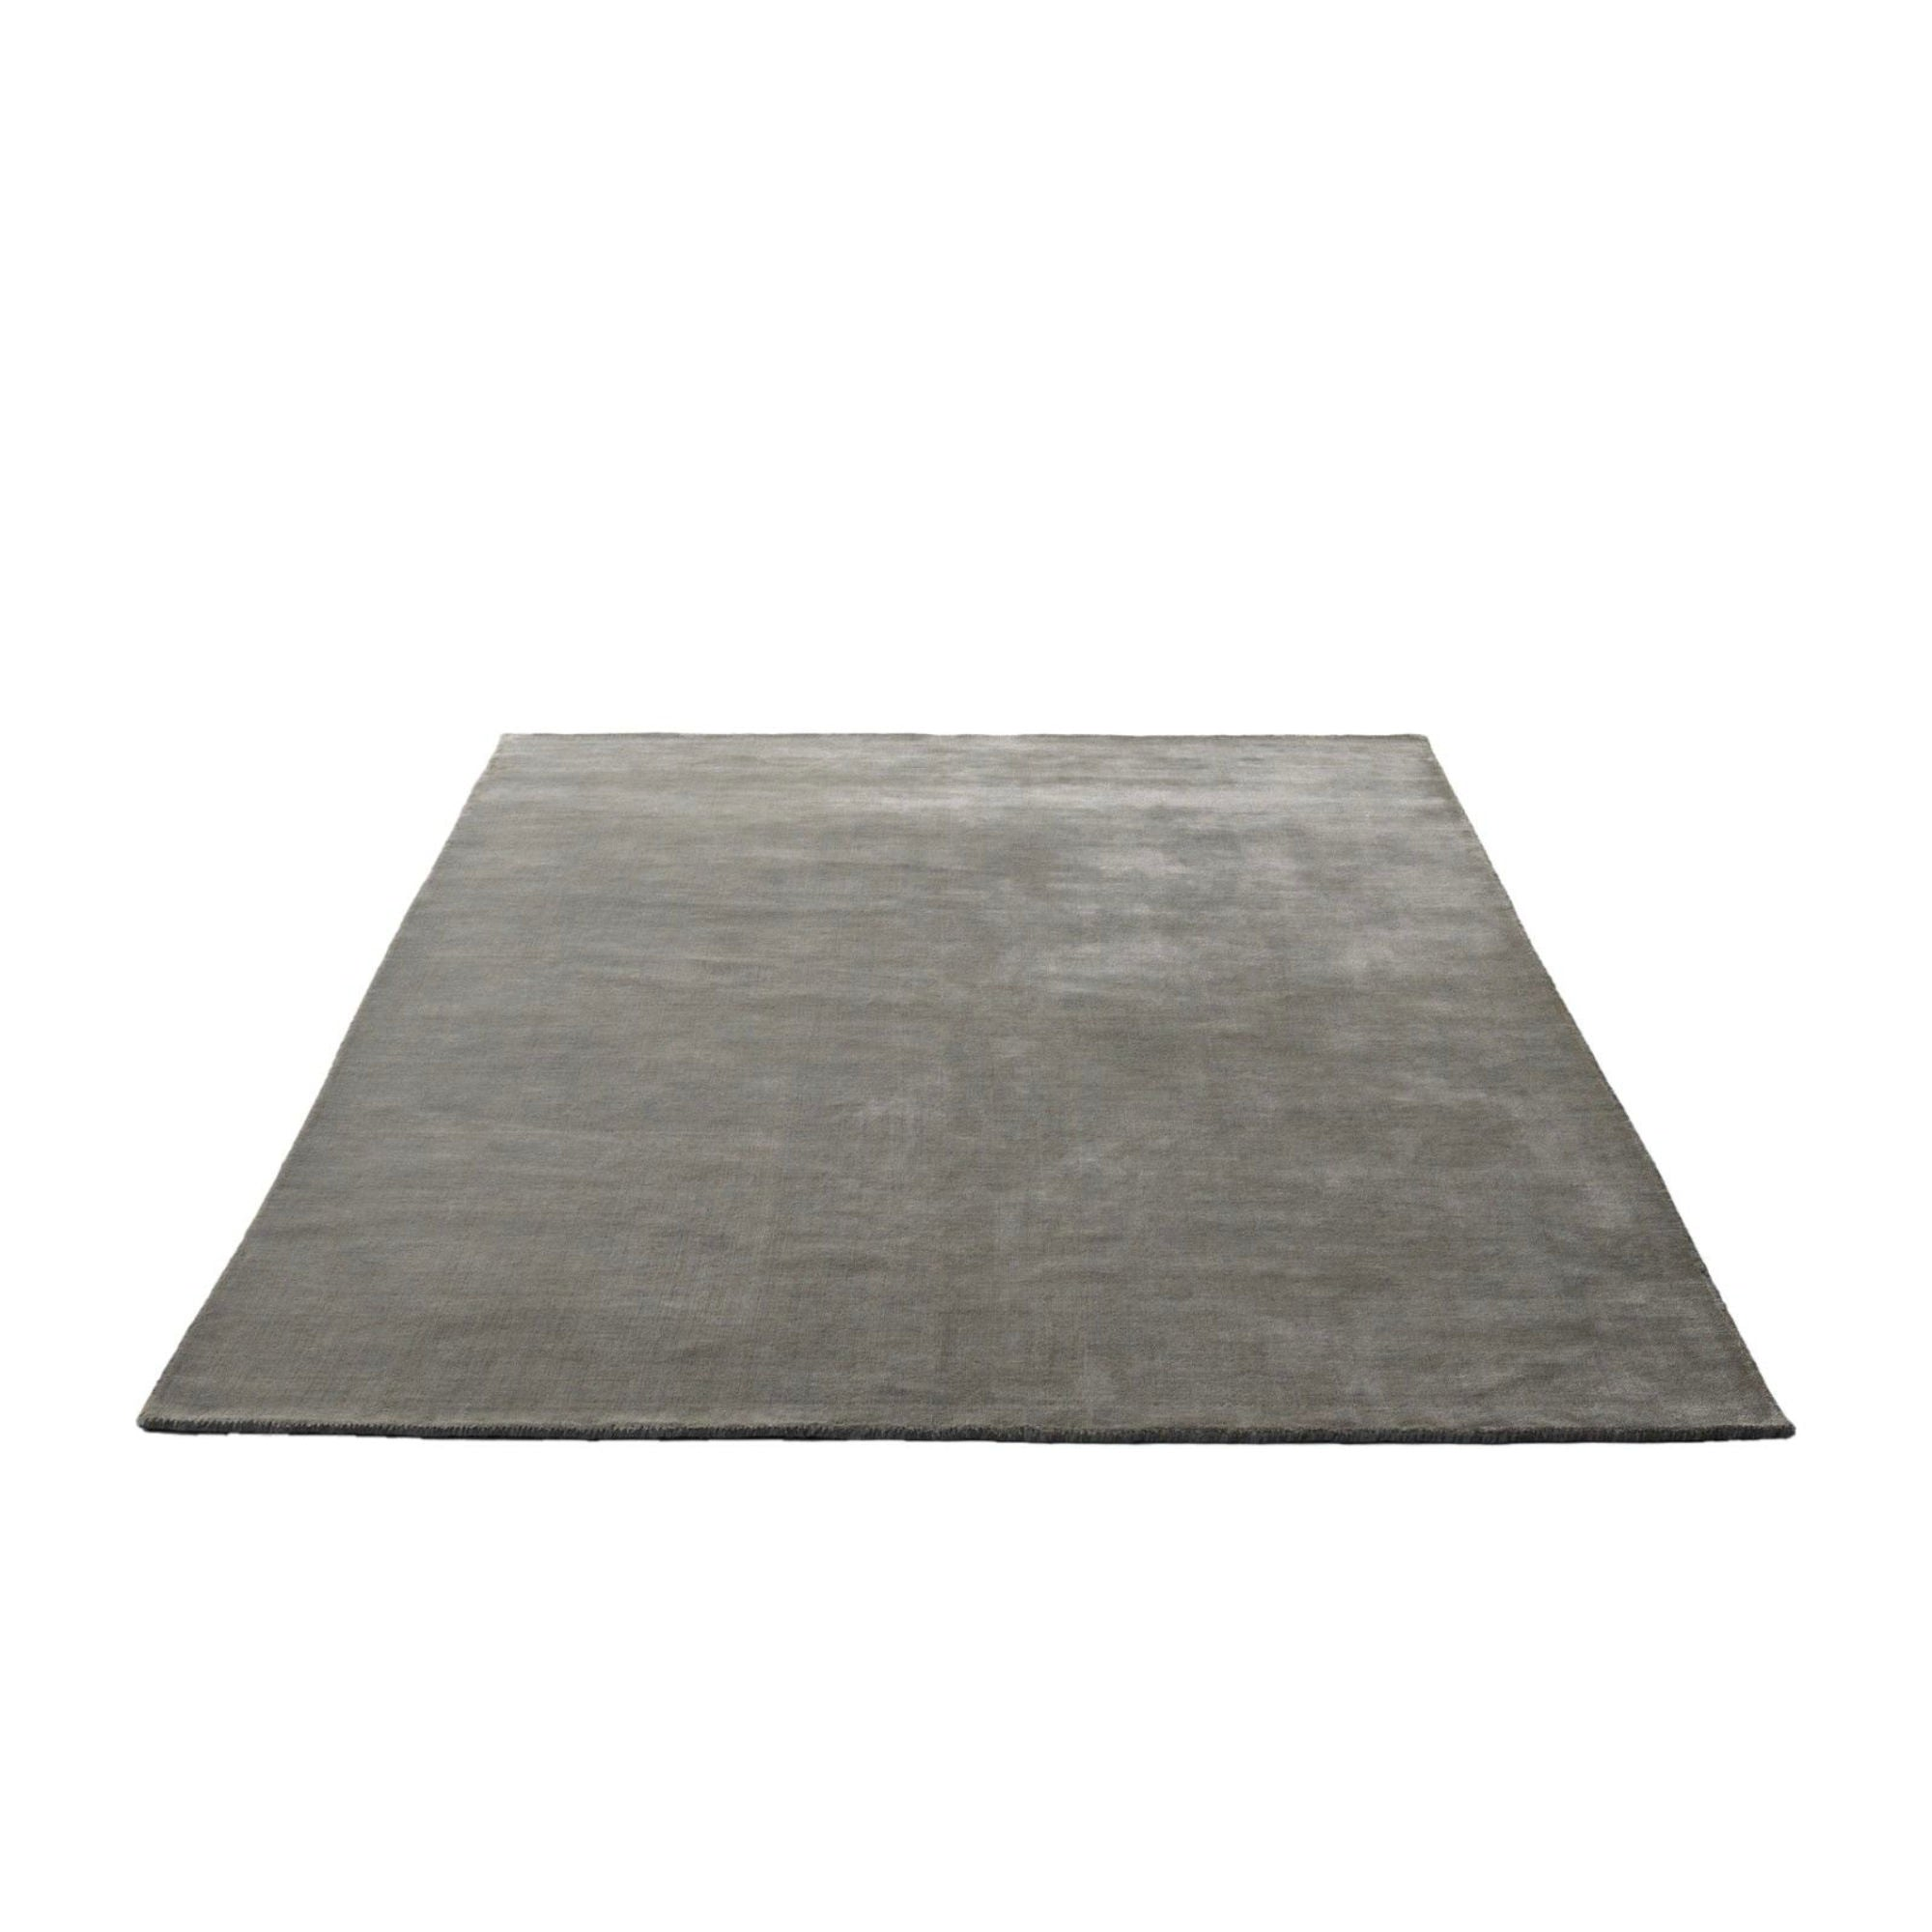 &Tradition AP5 The Moor rug 170*240, grey moss